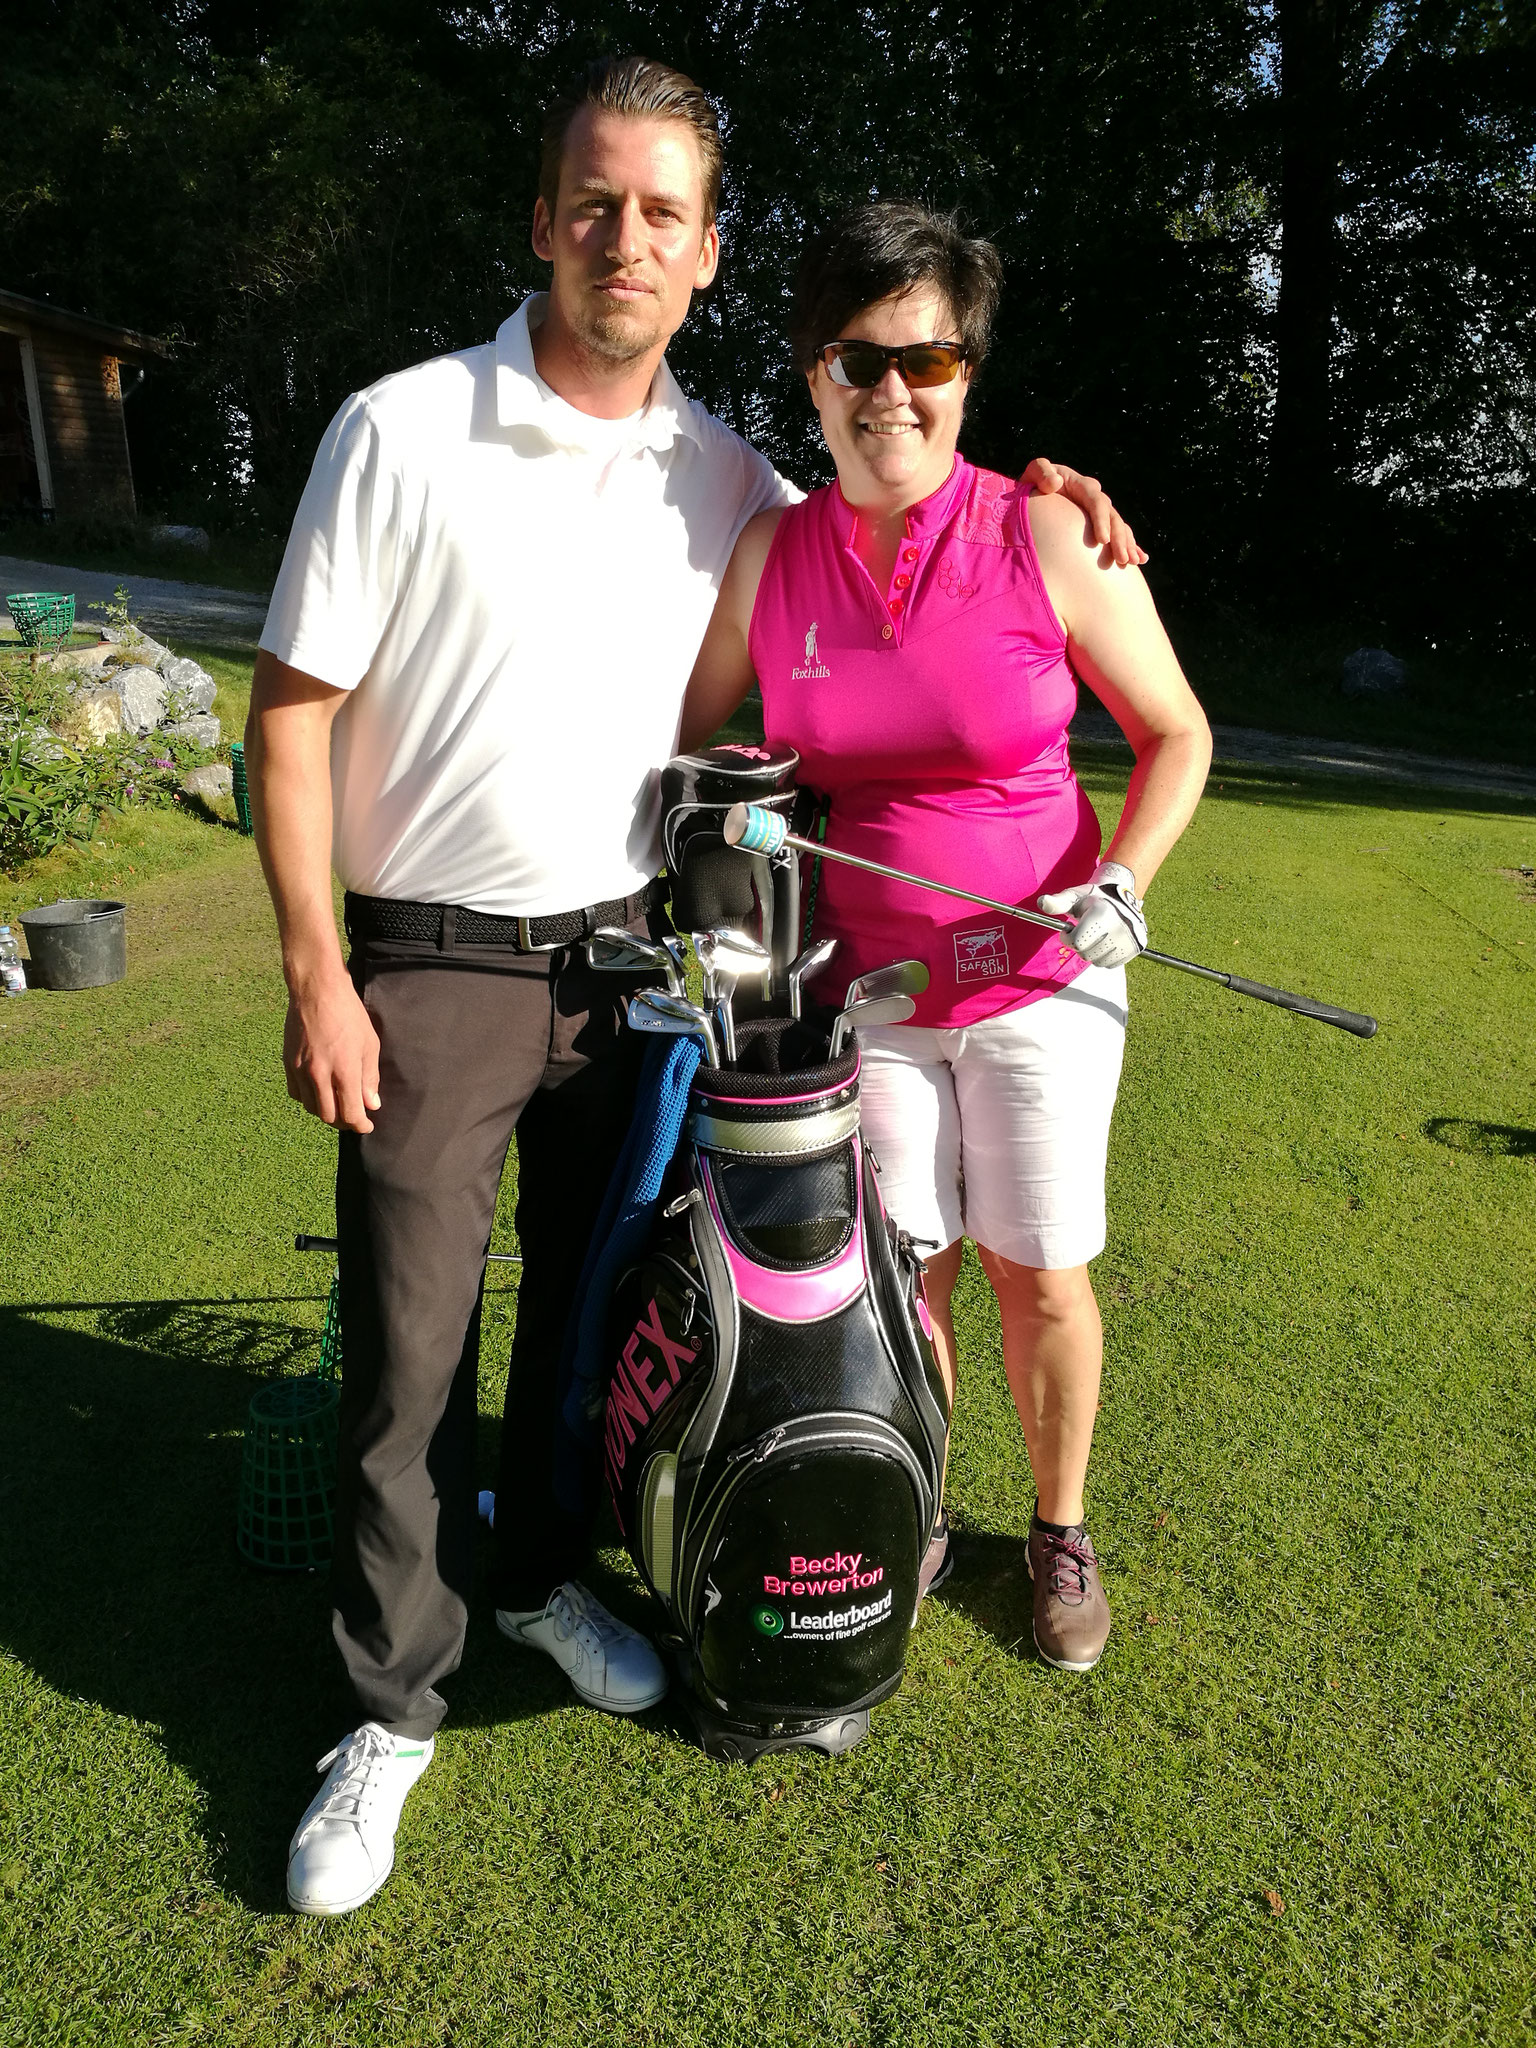 Becky Brewerton, Ladies European Tour Winner